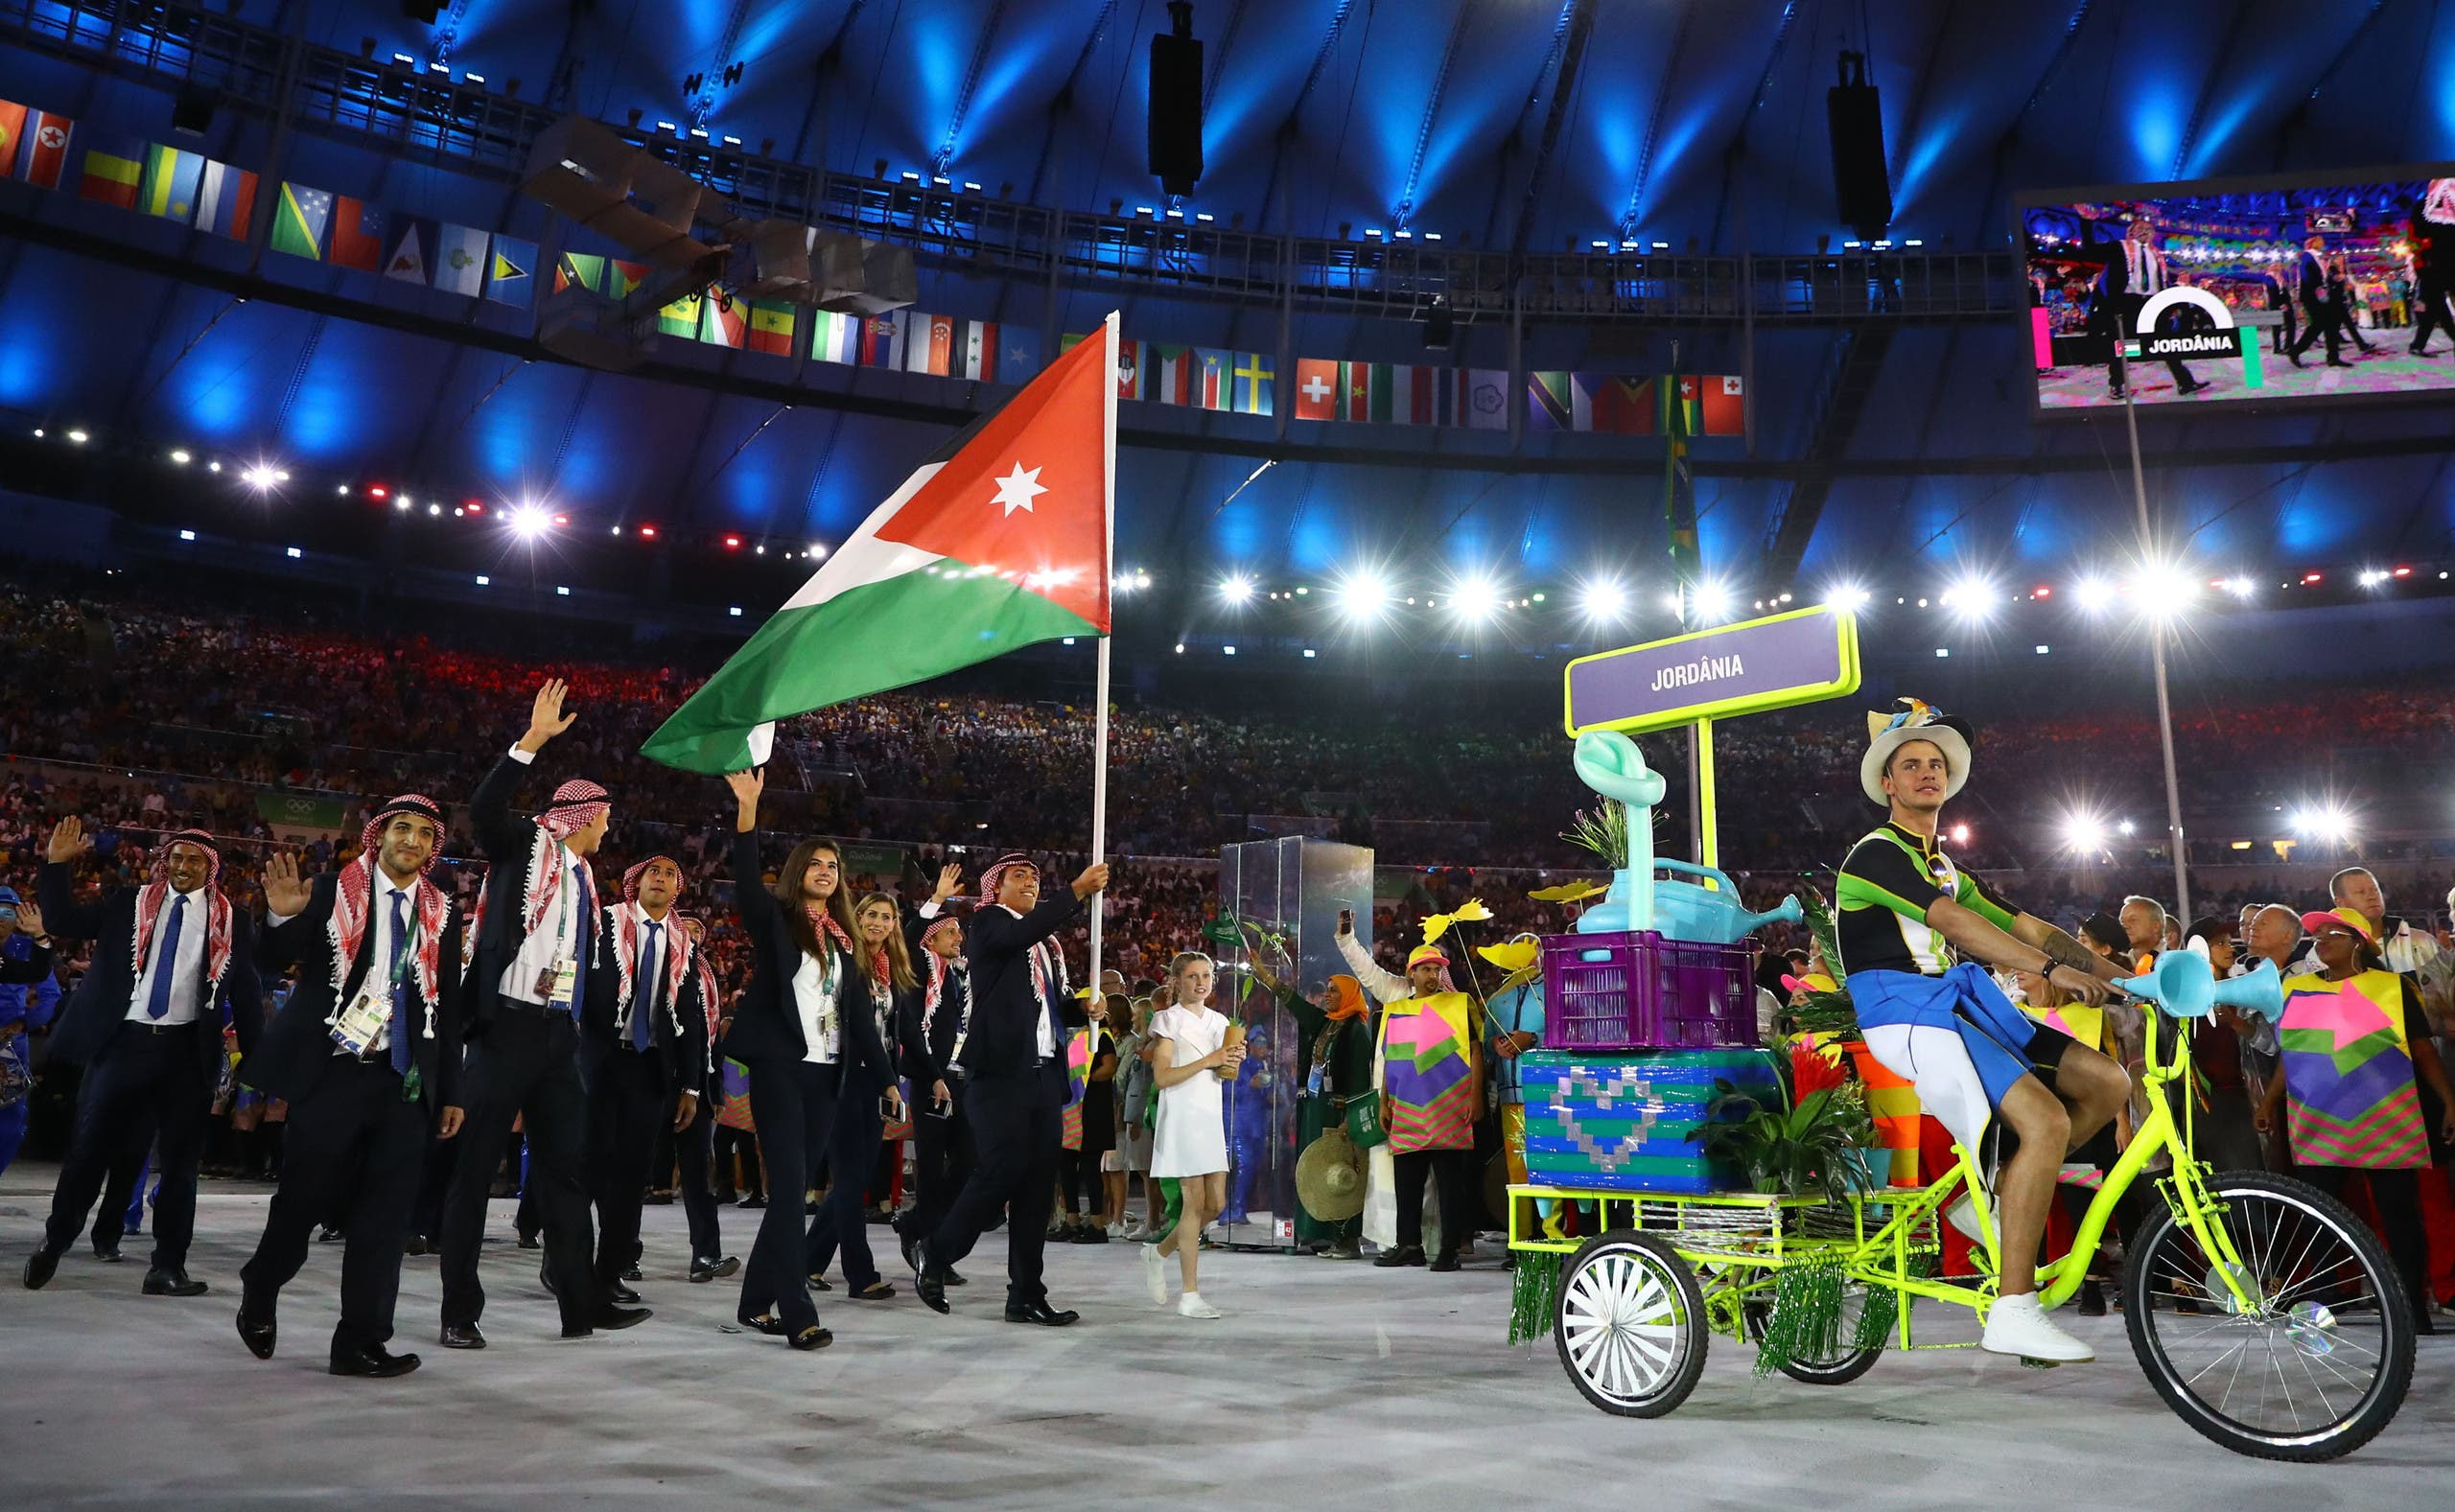 Arab states fly their flags at Rio opening 2016